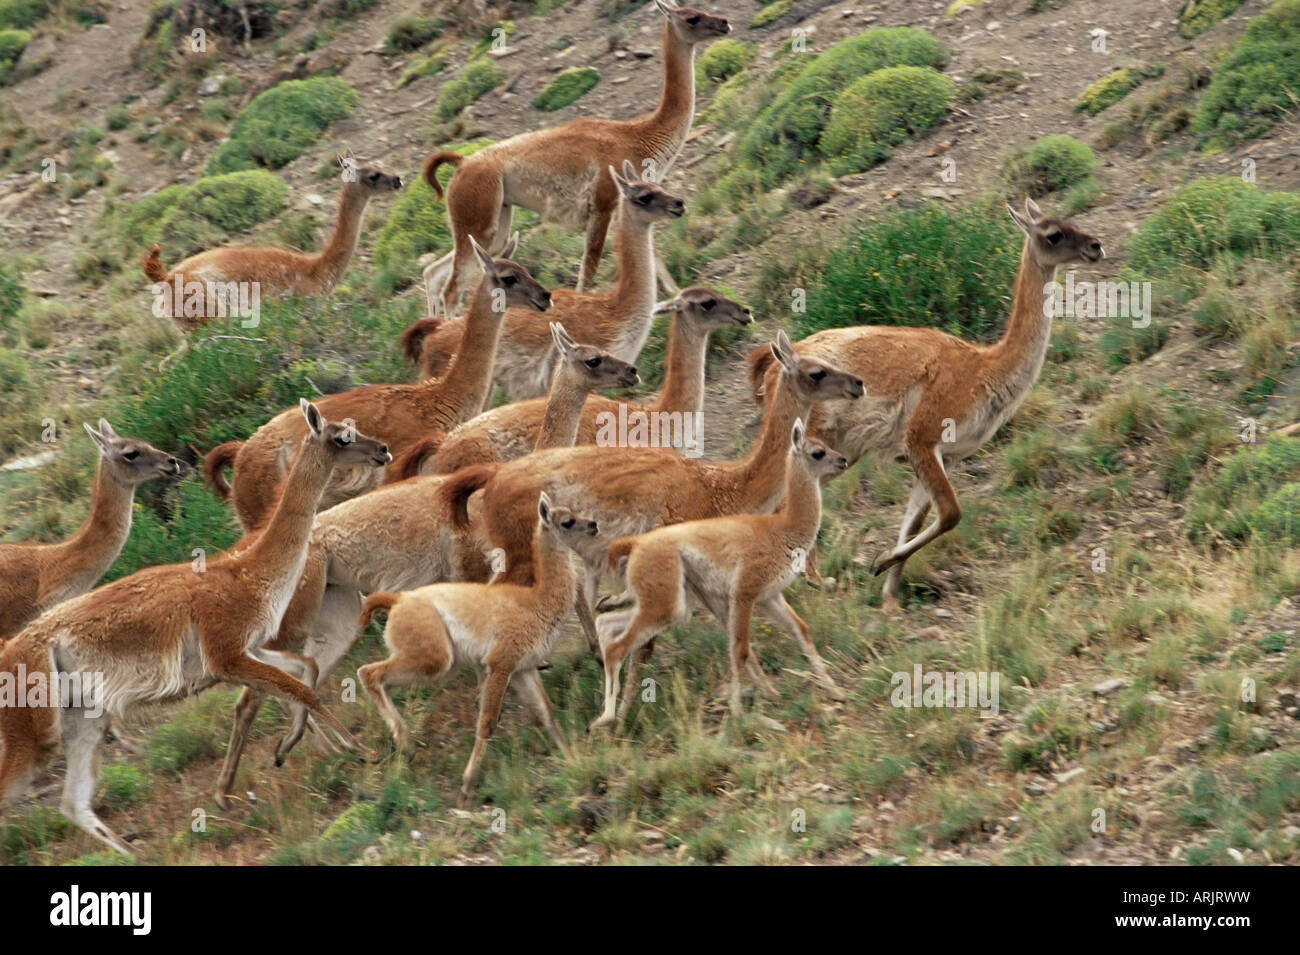 A herd of guanacos (Lama guanicoe), Torres del Paine National Park, Patagonia, Chile, South America - Stock Image